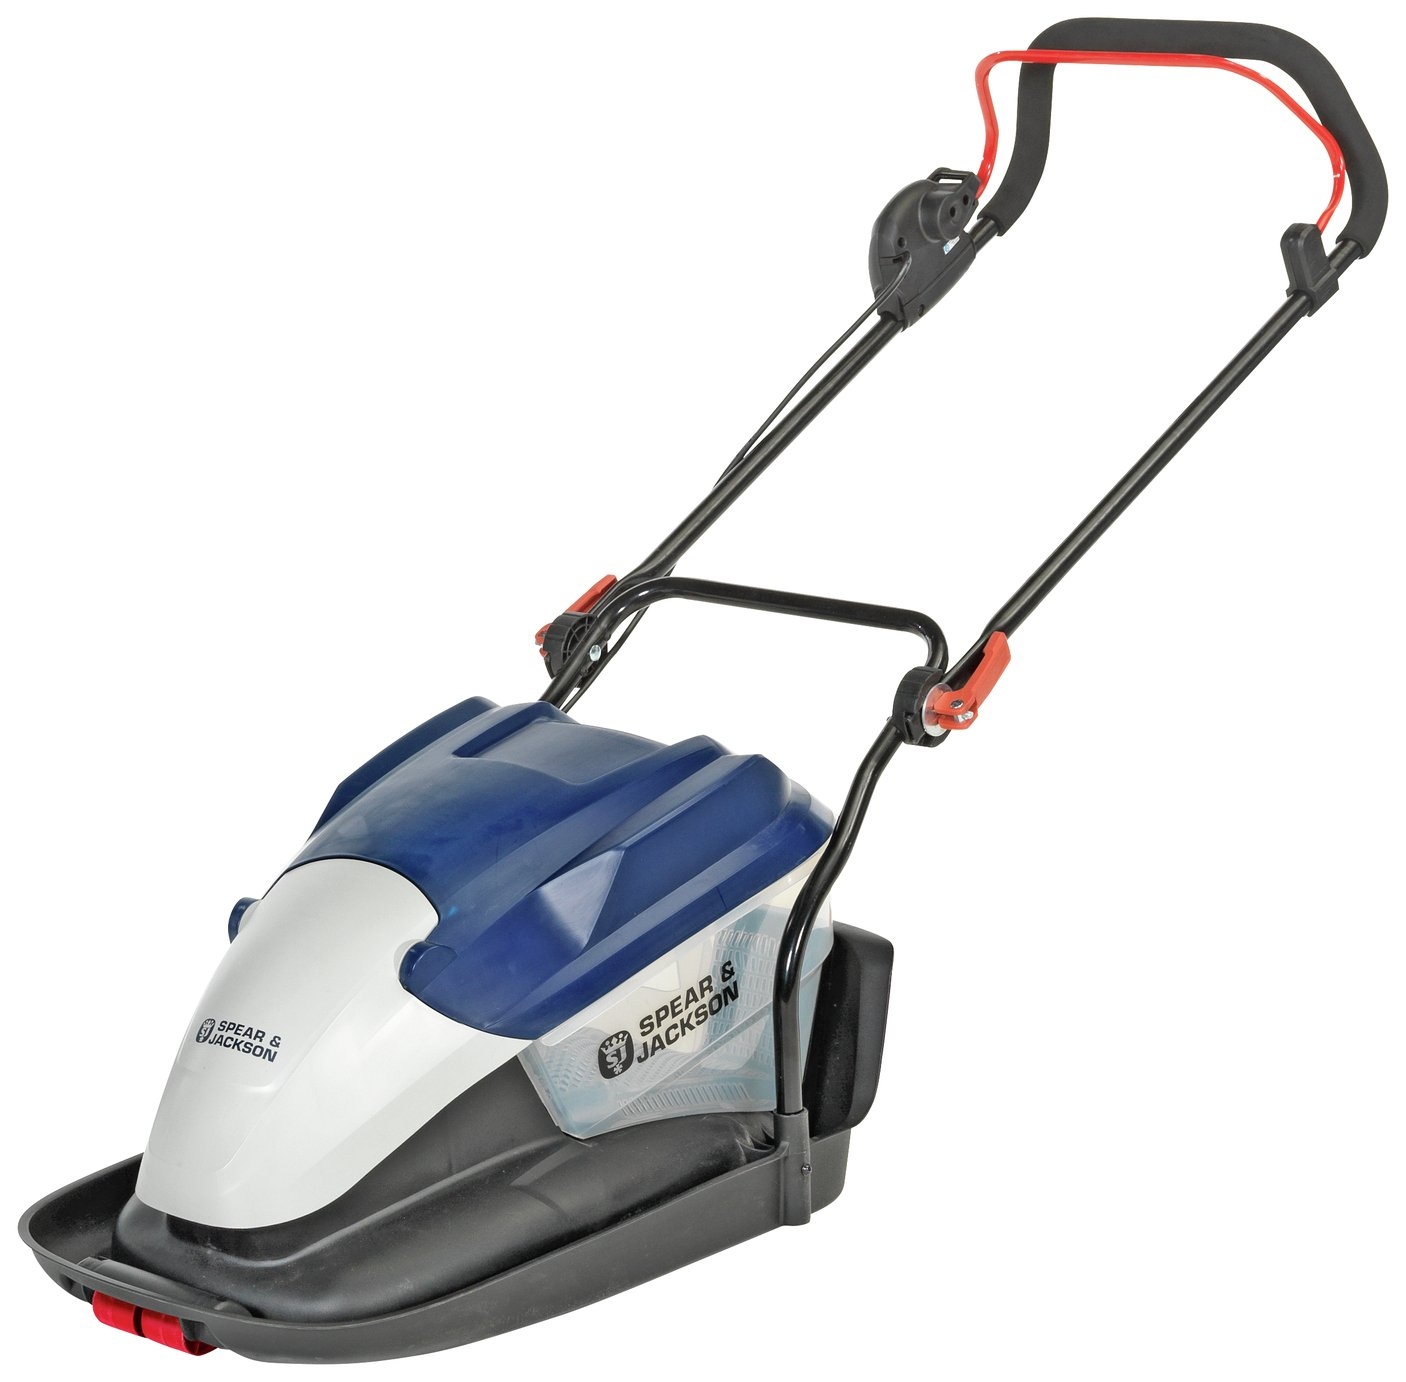 Spear & Jackson 33cm Hover Collect Lawnmower - 1700W at Argos